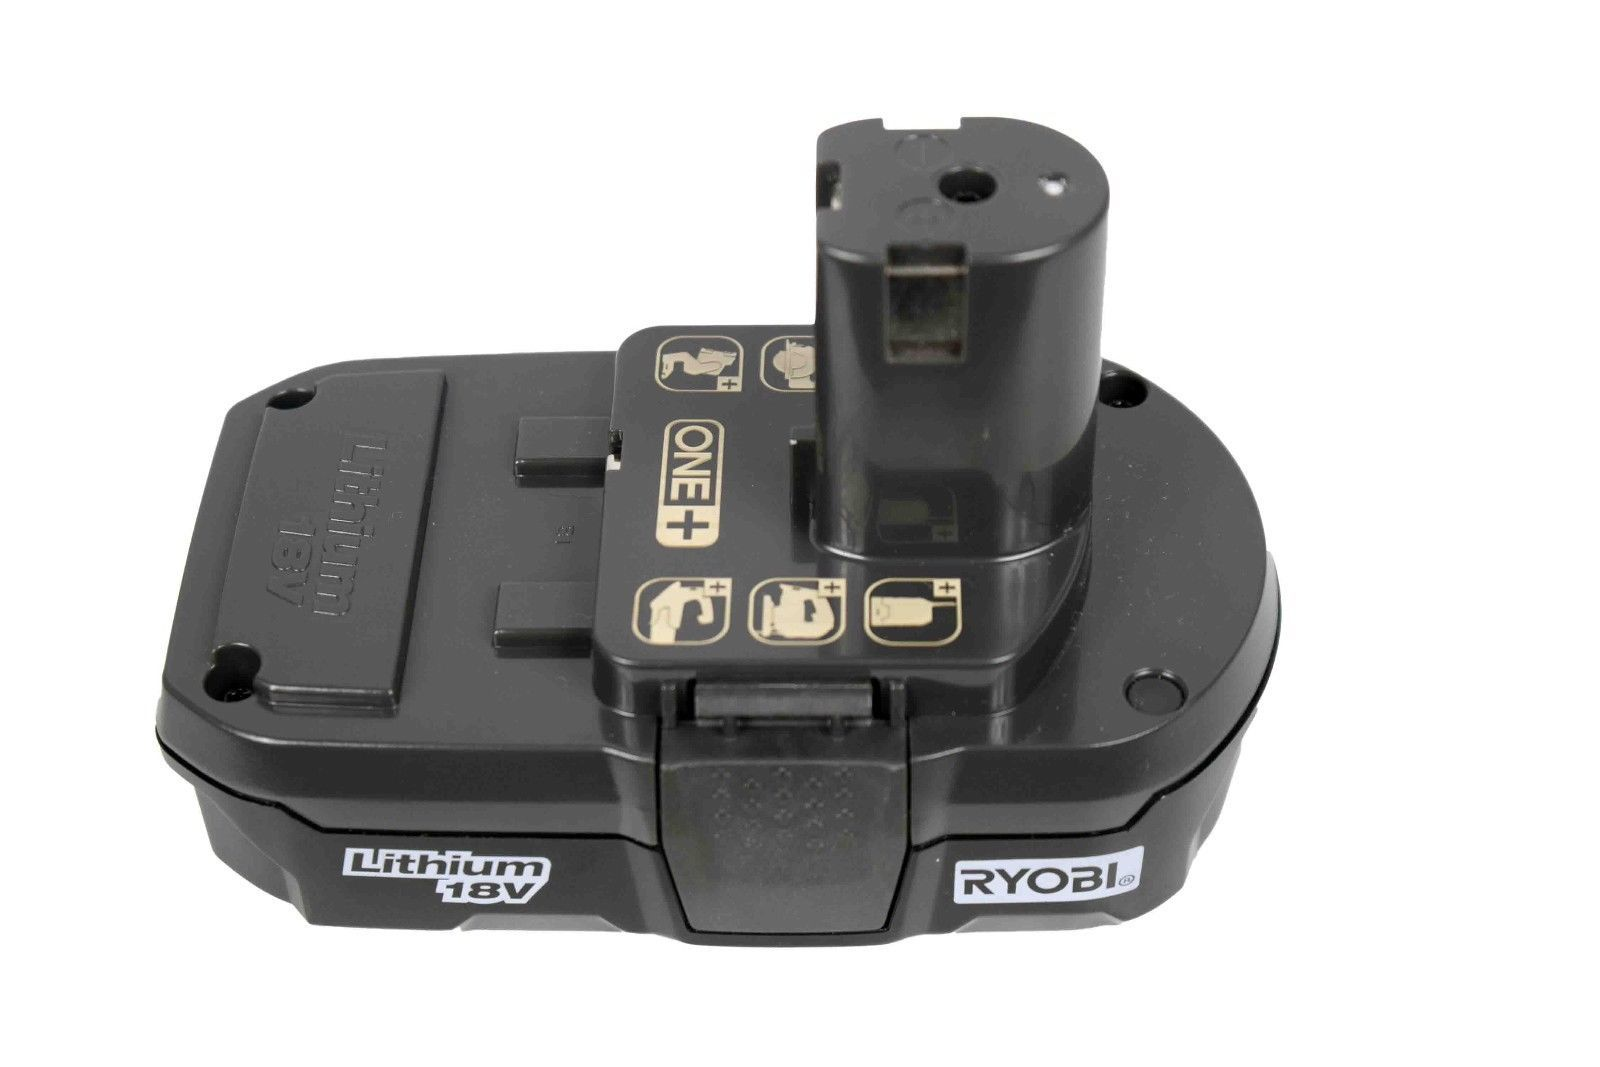 Ryobi-One-P102-18V-Lithium-Ion-Battery-Two-Pack-image-6